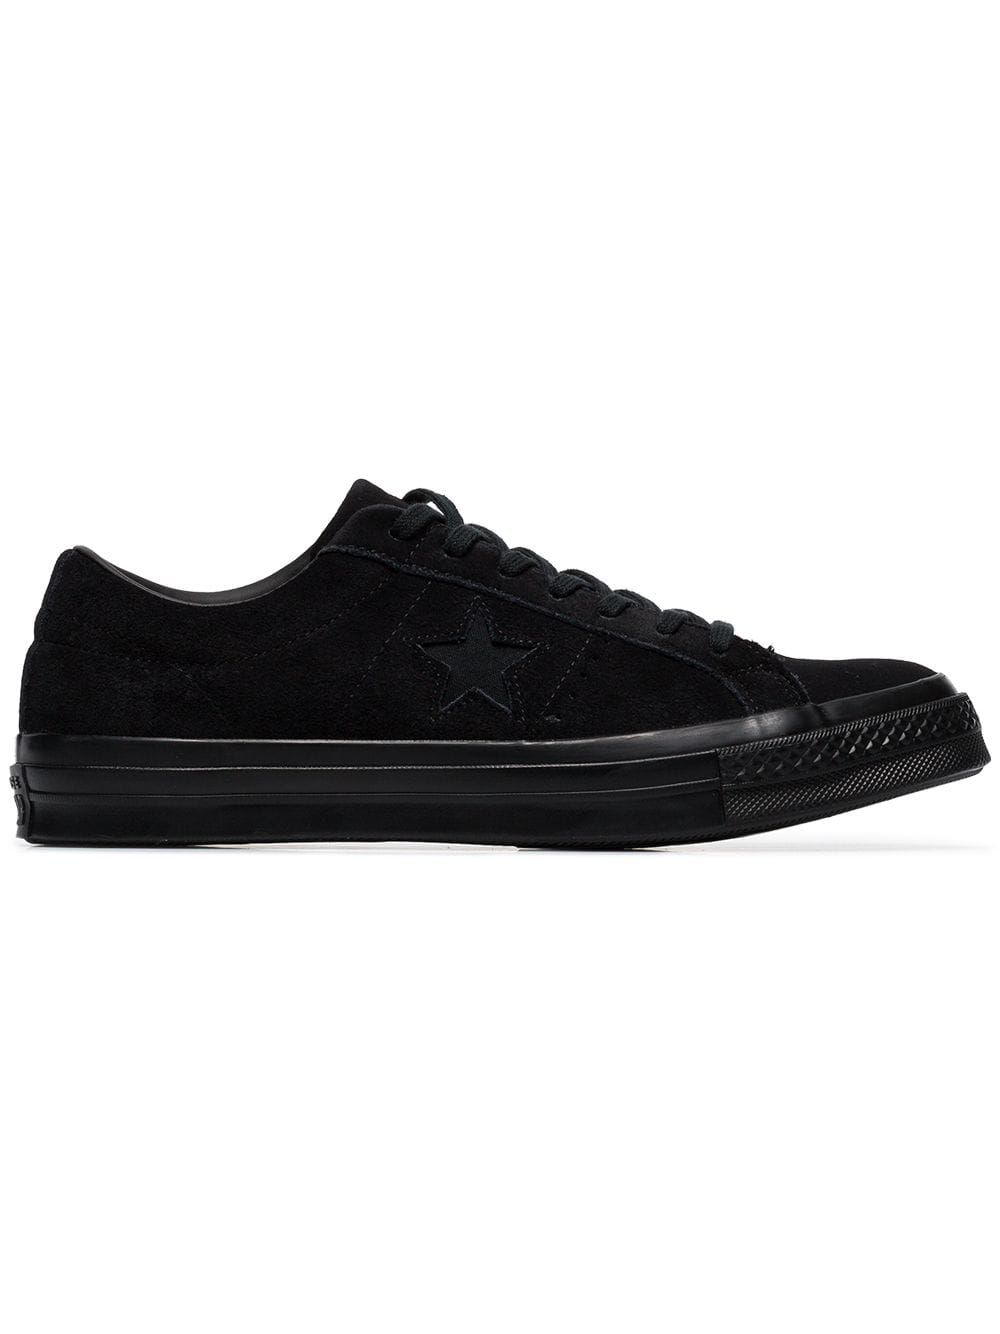 d12a9109123 CONVERSE Converse Black One Star Suede Sneakers - Farfetch.  converse  shoes